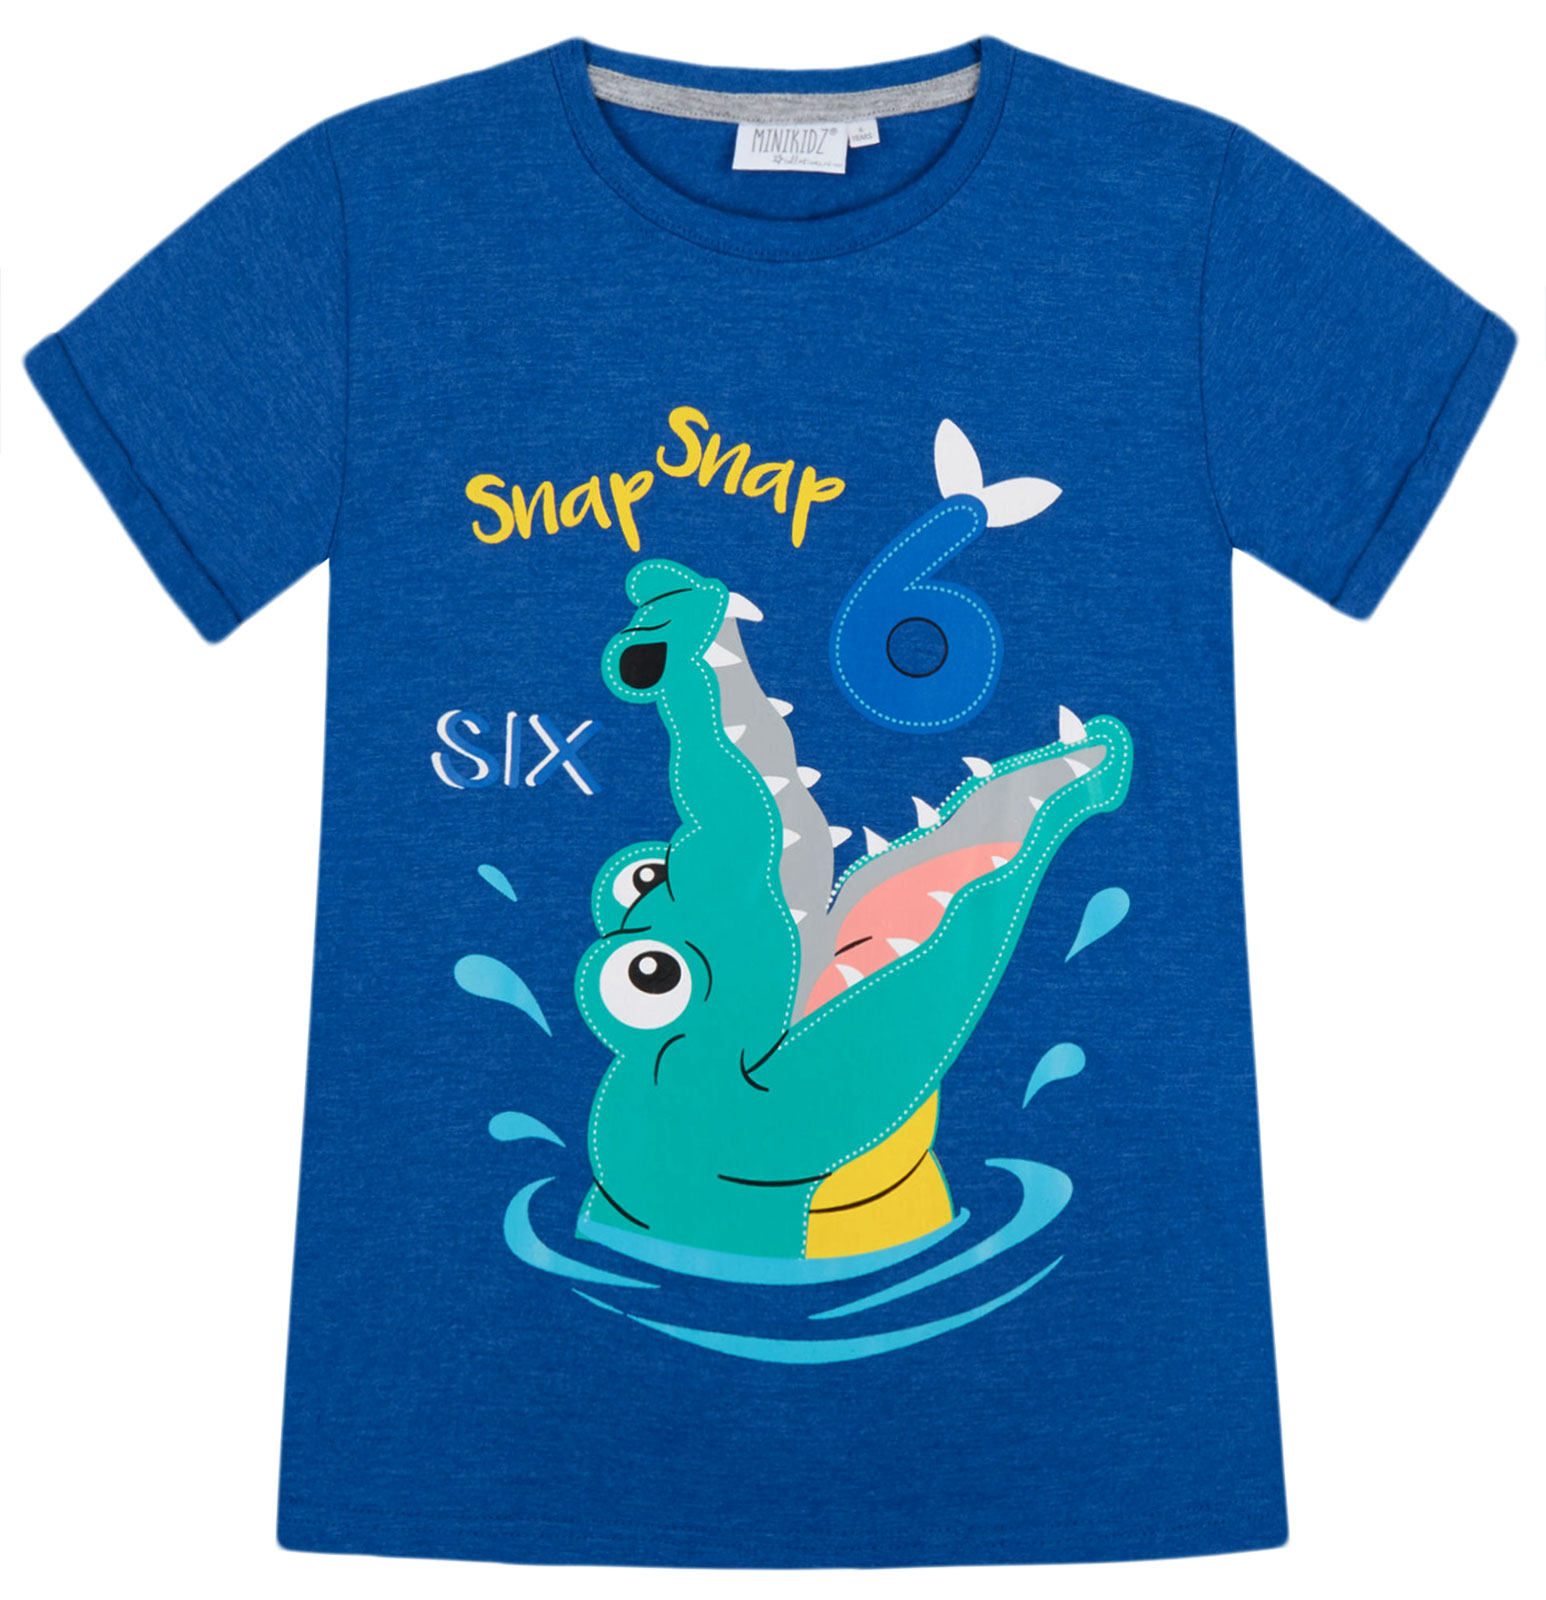 Boys-Birthday-I-Am-1-2-3-4-5-6-Years-Top-Kids-New-Age-Number-Birthday-T-Shirt thumbnail 17